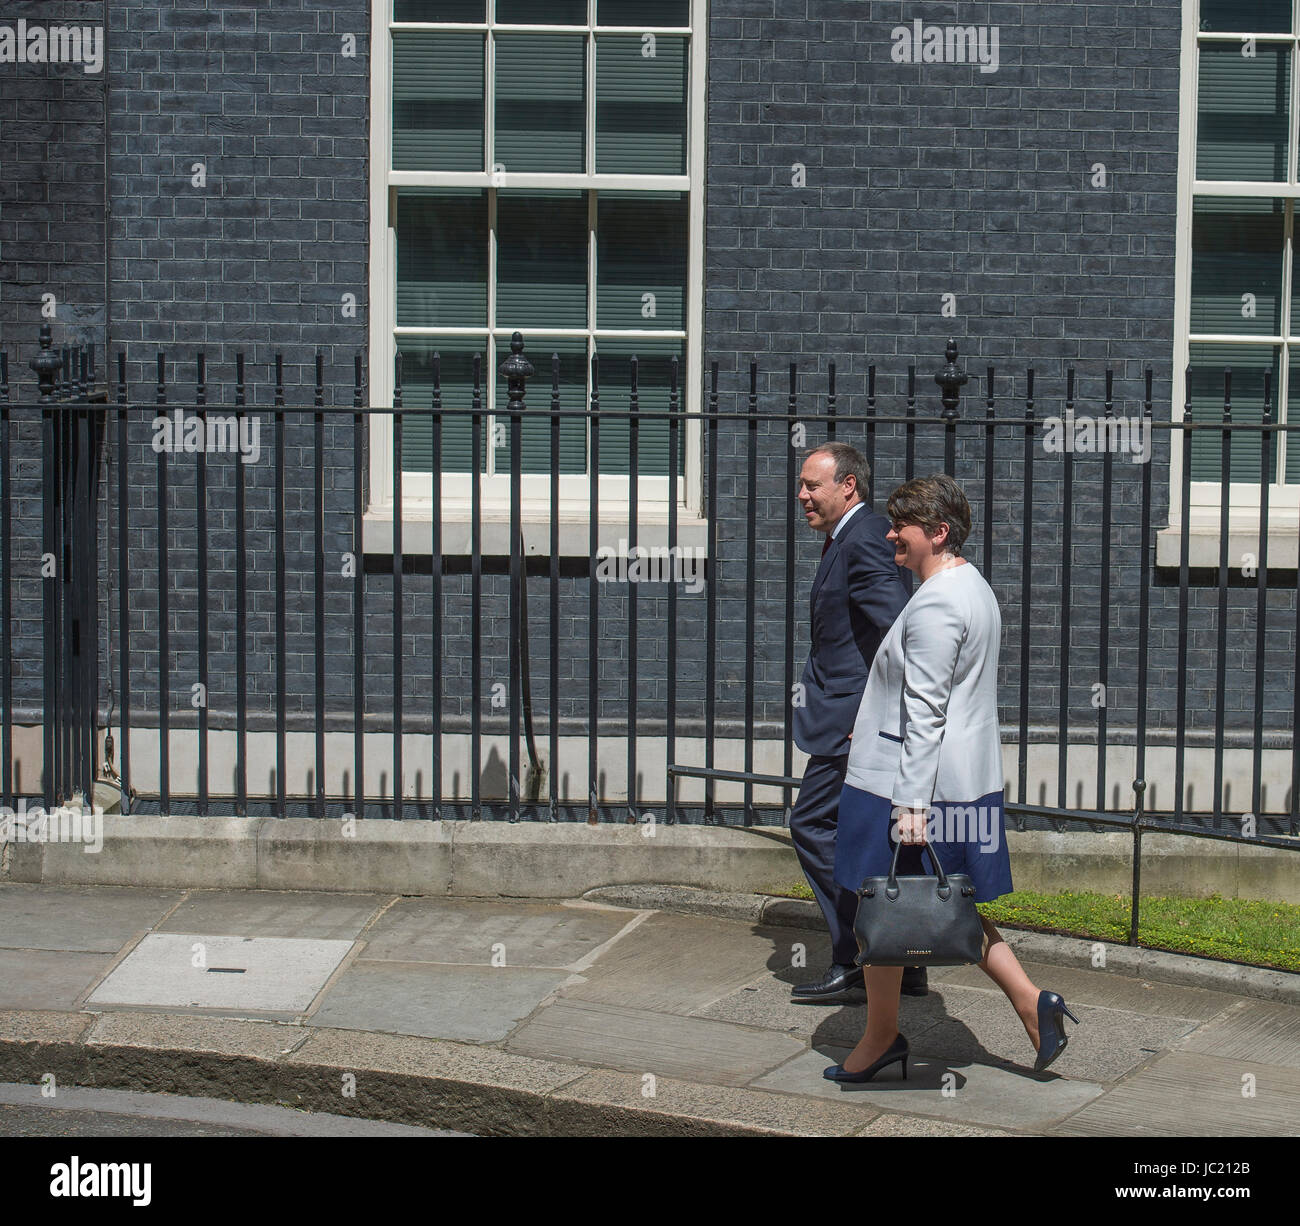 Downing Street, London, UK. 13th June, 2017. DUP leader Arlene Foster arrives in Downing Street with Northern Ireland - Stock Image